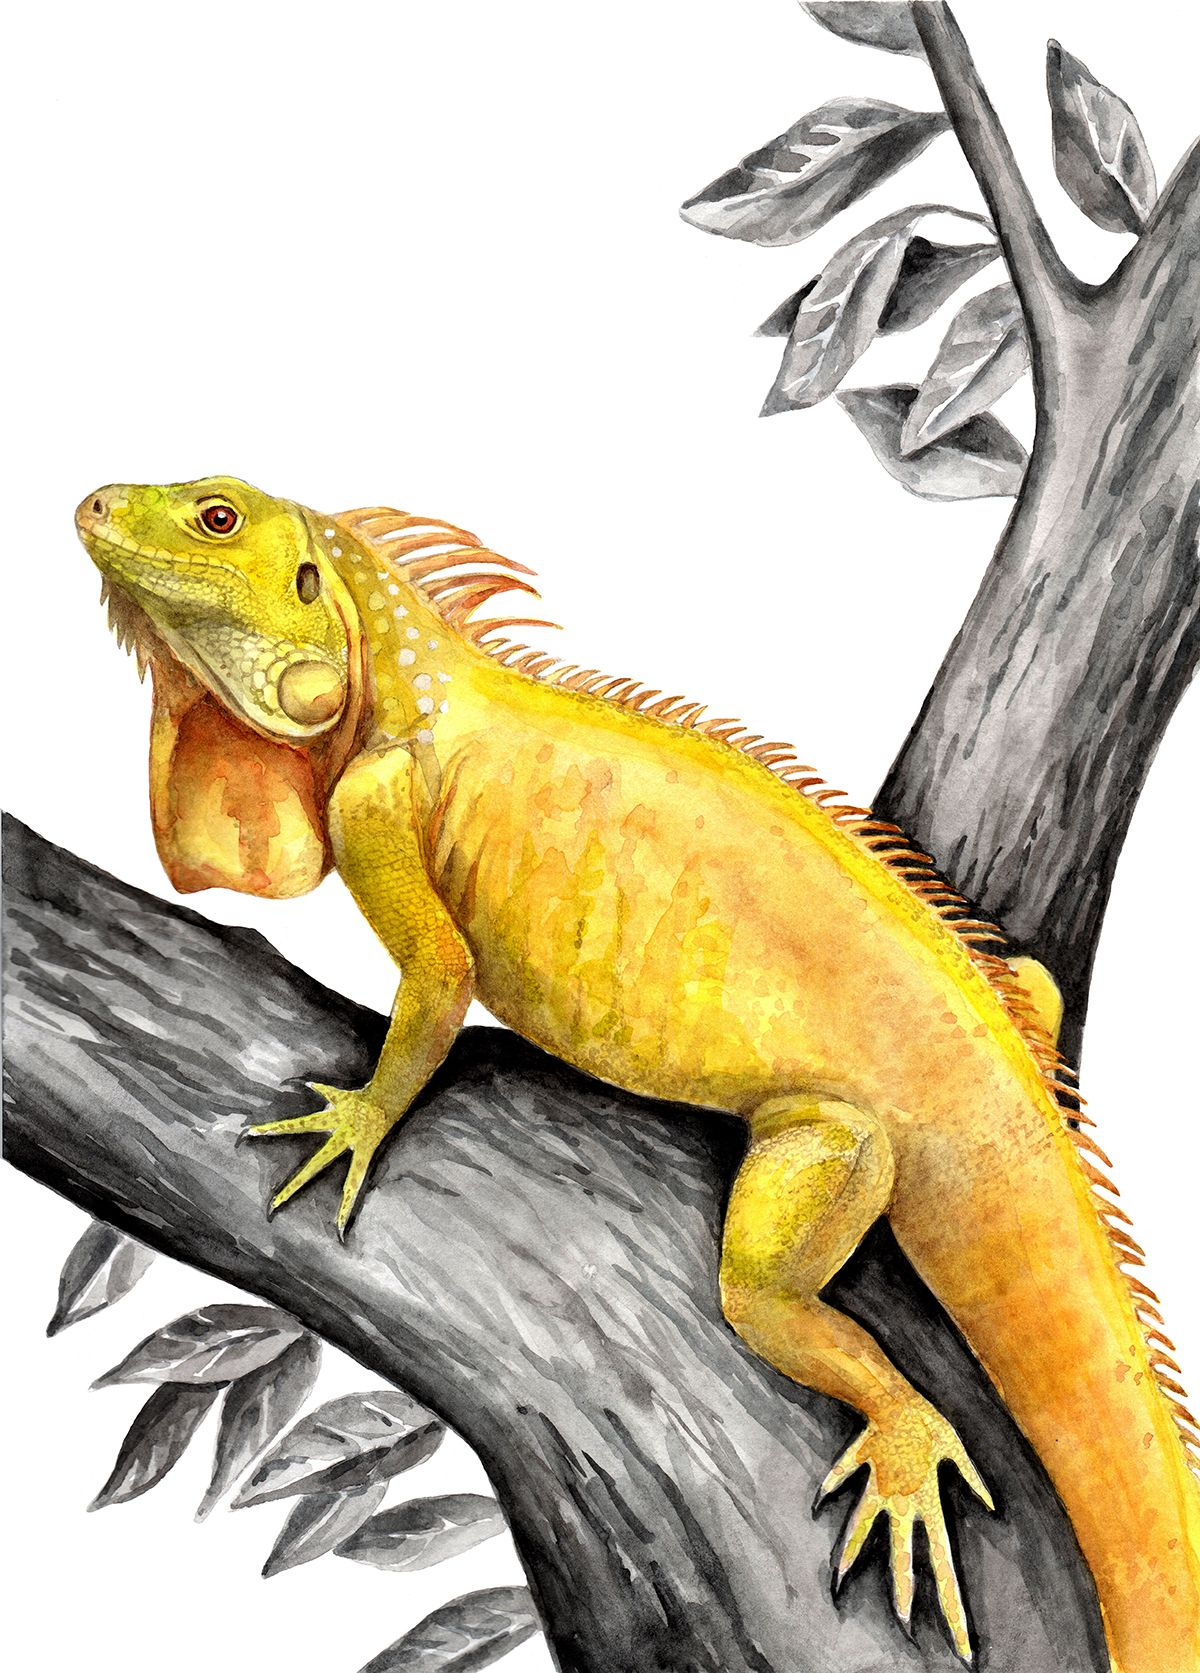 Yellow Lizard Print Reptile Posters Lizard Wall Art Reptile Etsy In 2021 Iguana Reptiles Crocodile Illustration